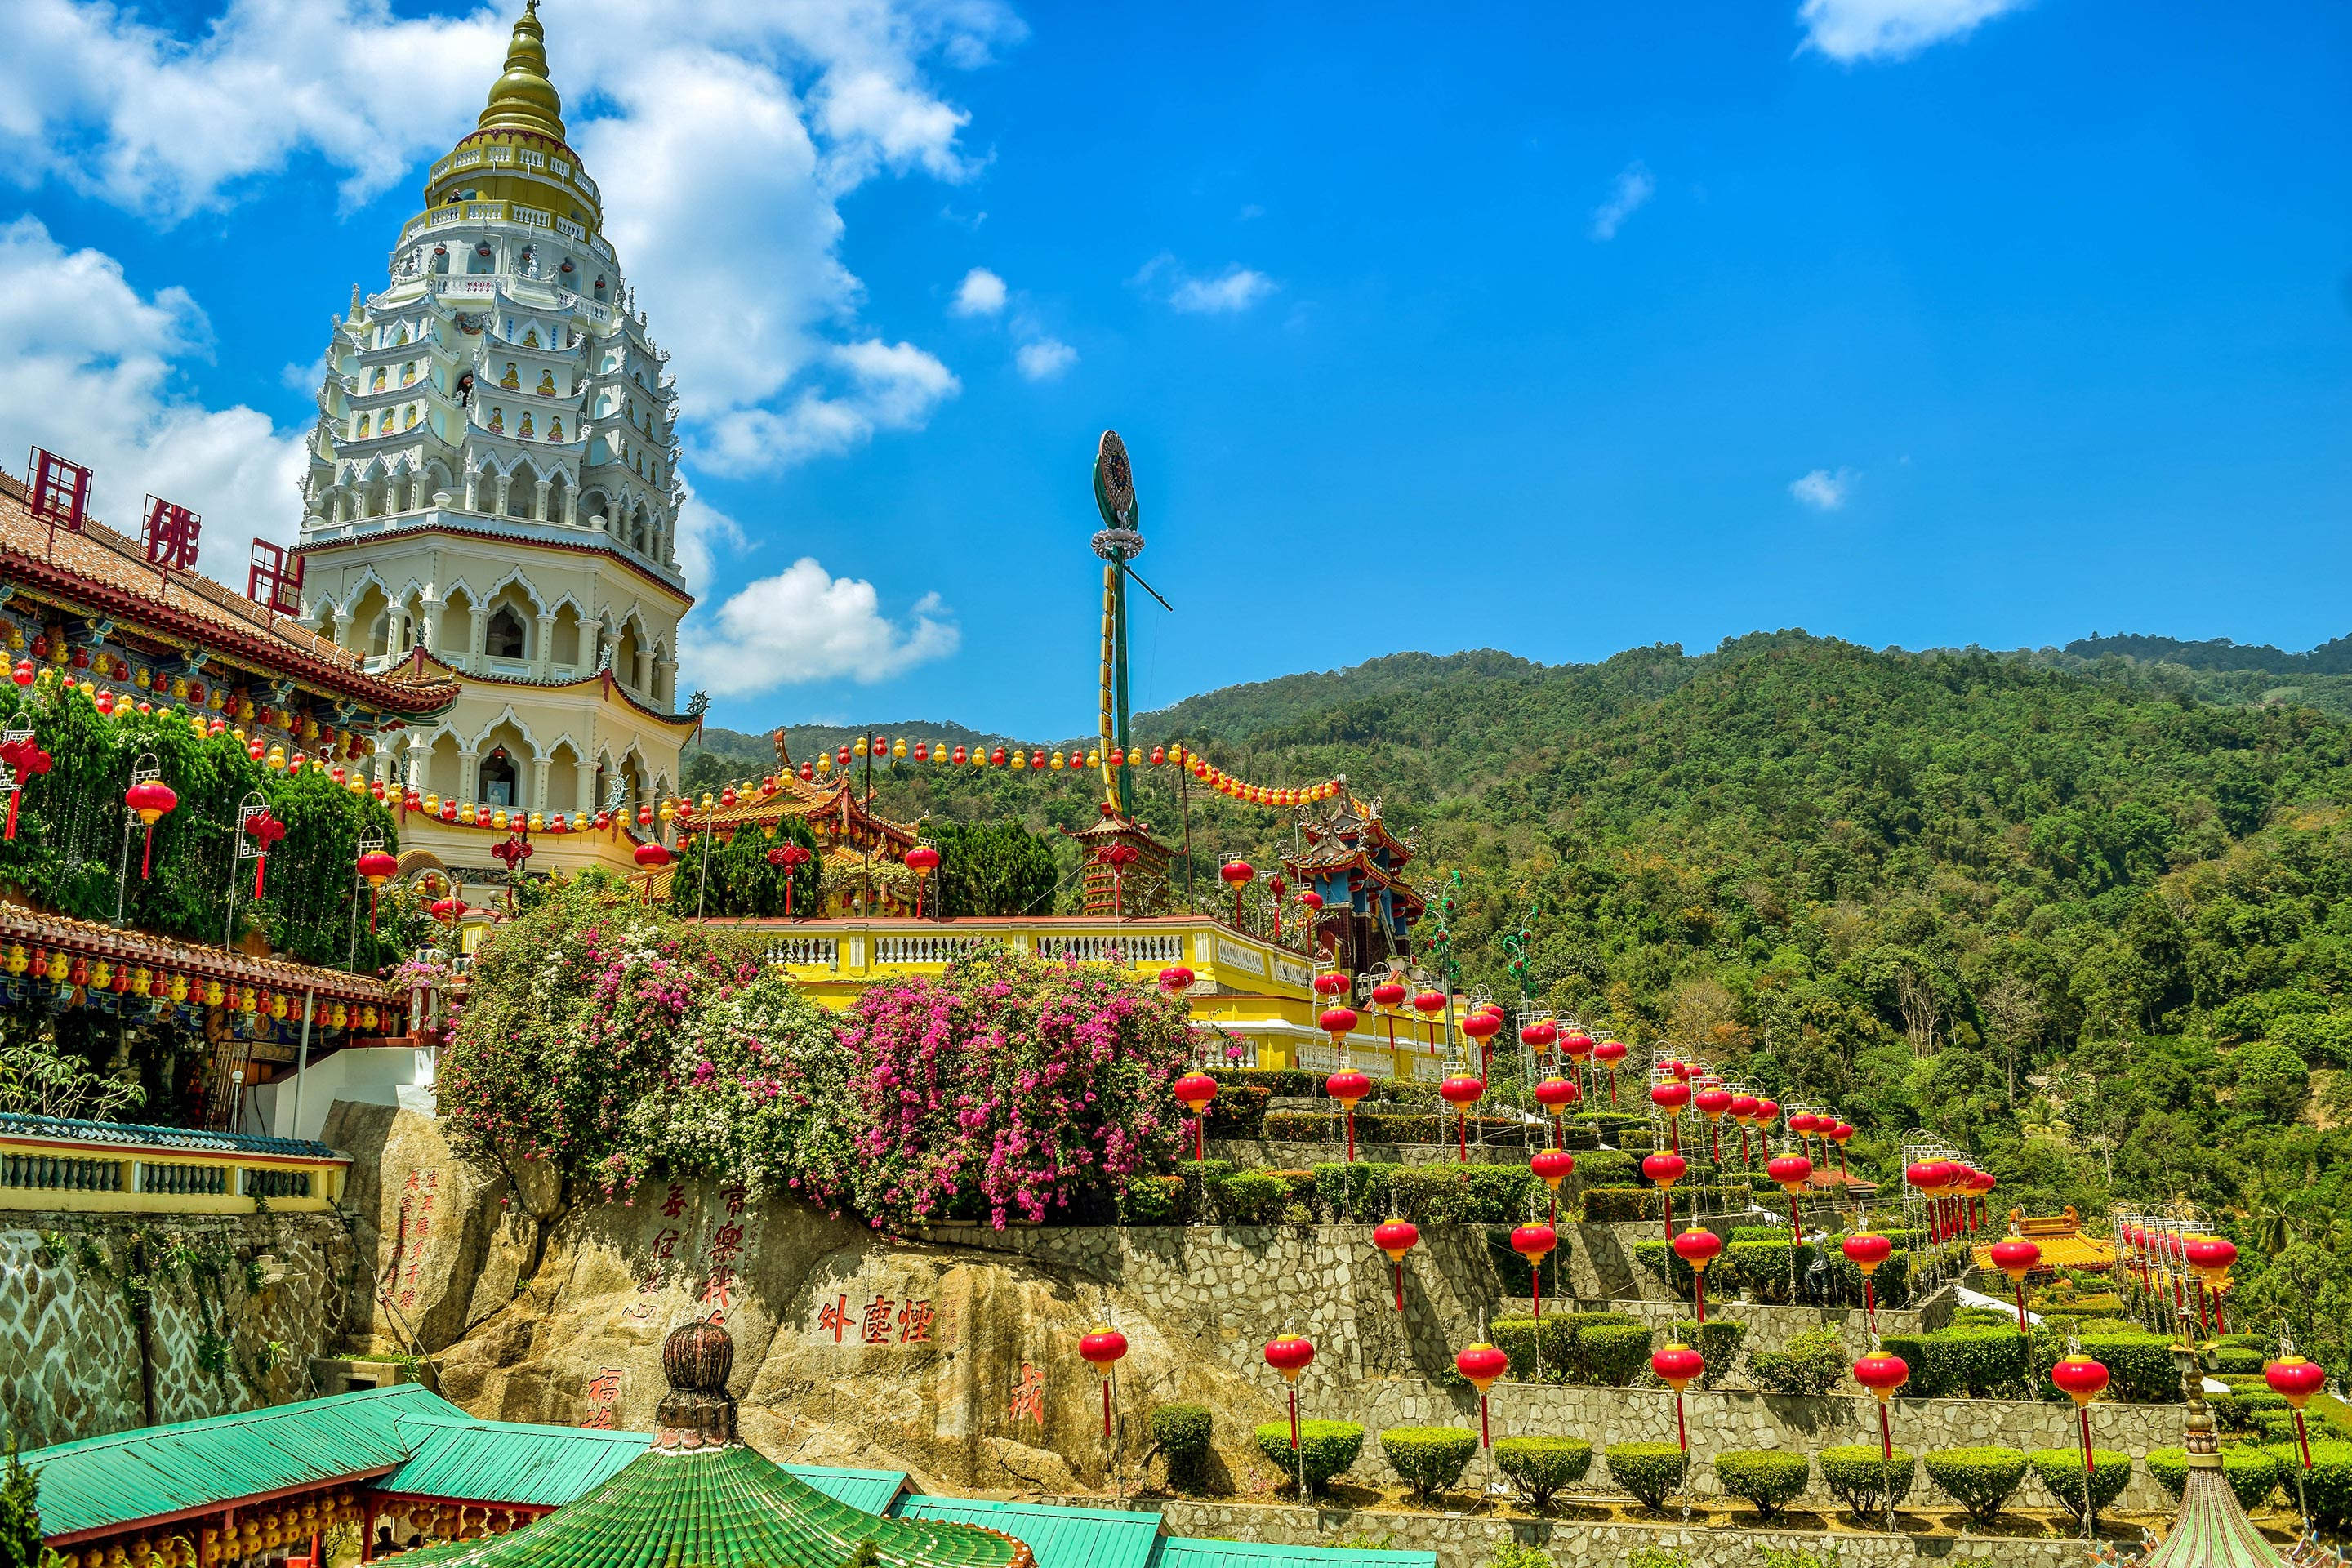 Color temple located in Penang, Malaysia called 'Kek Lok Si'